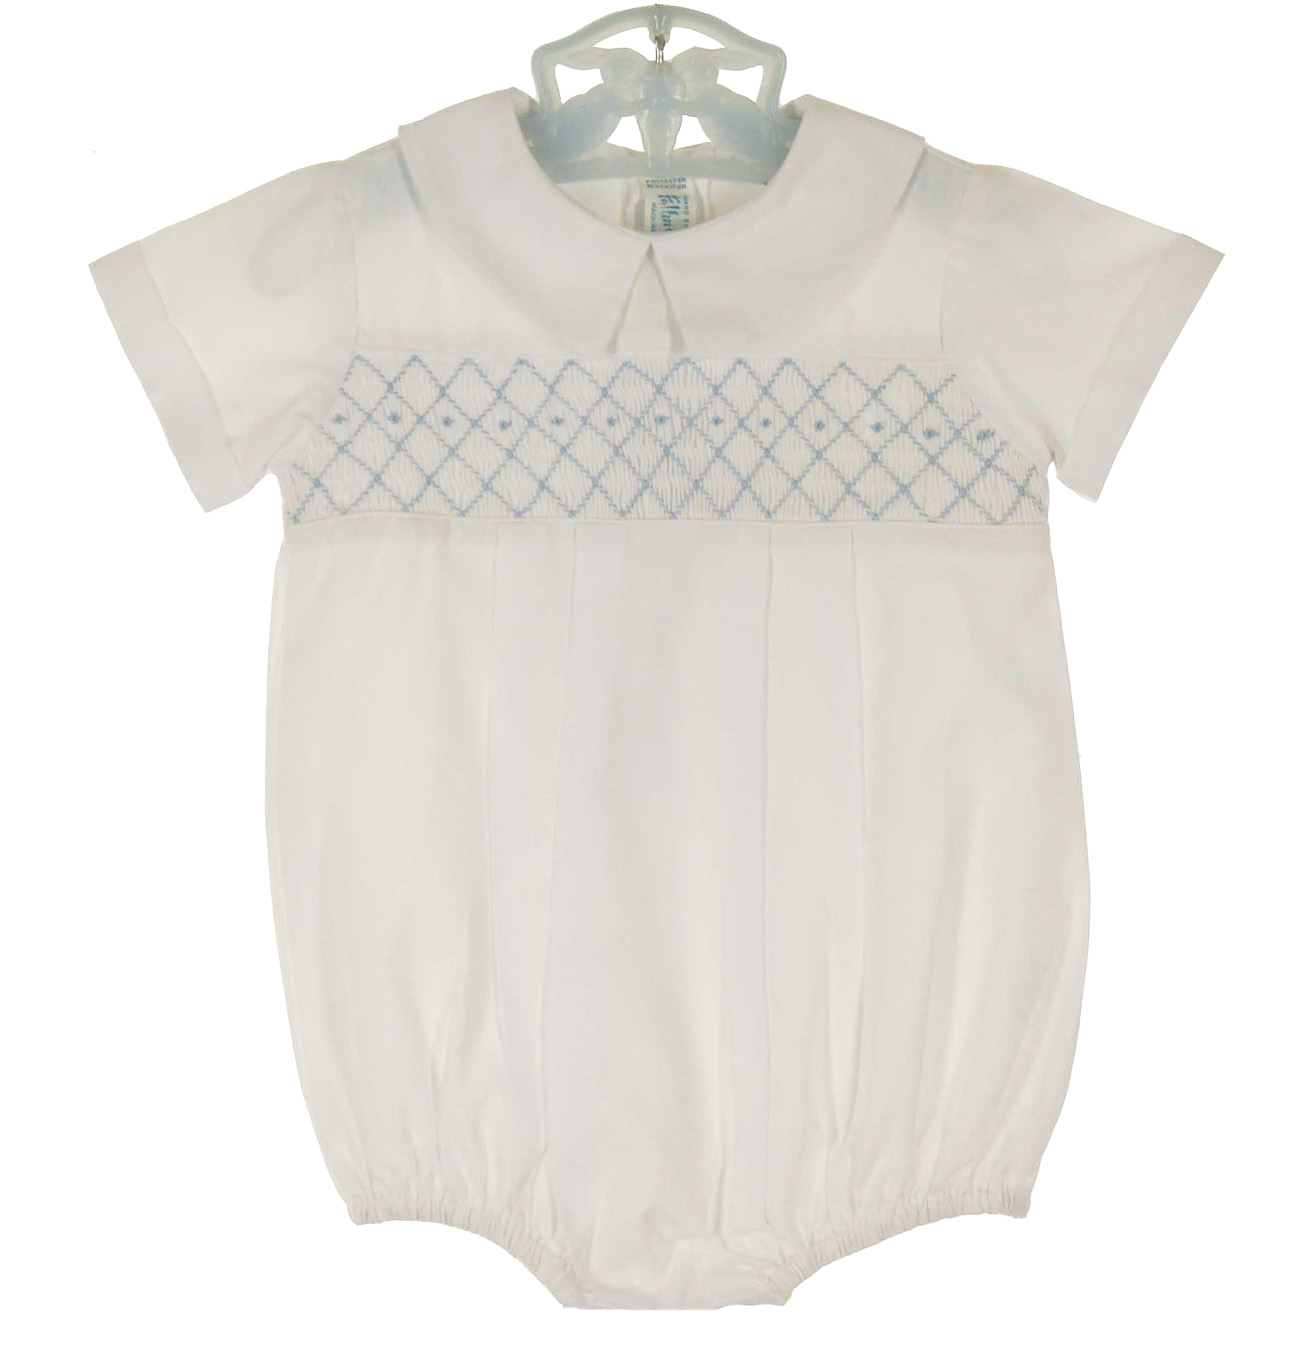 4c9831c209e9 NEW Feltman Brothers White Smocked Romper with Blue Embroidery